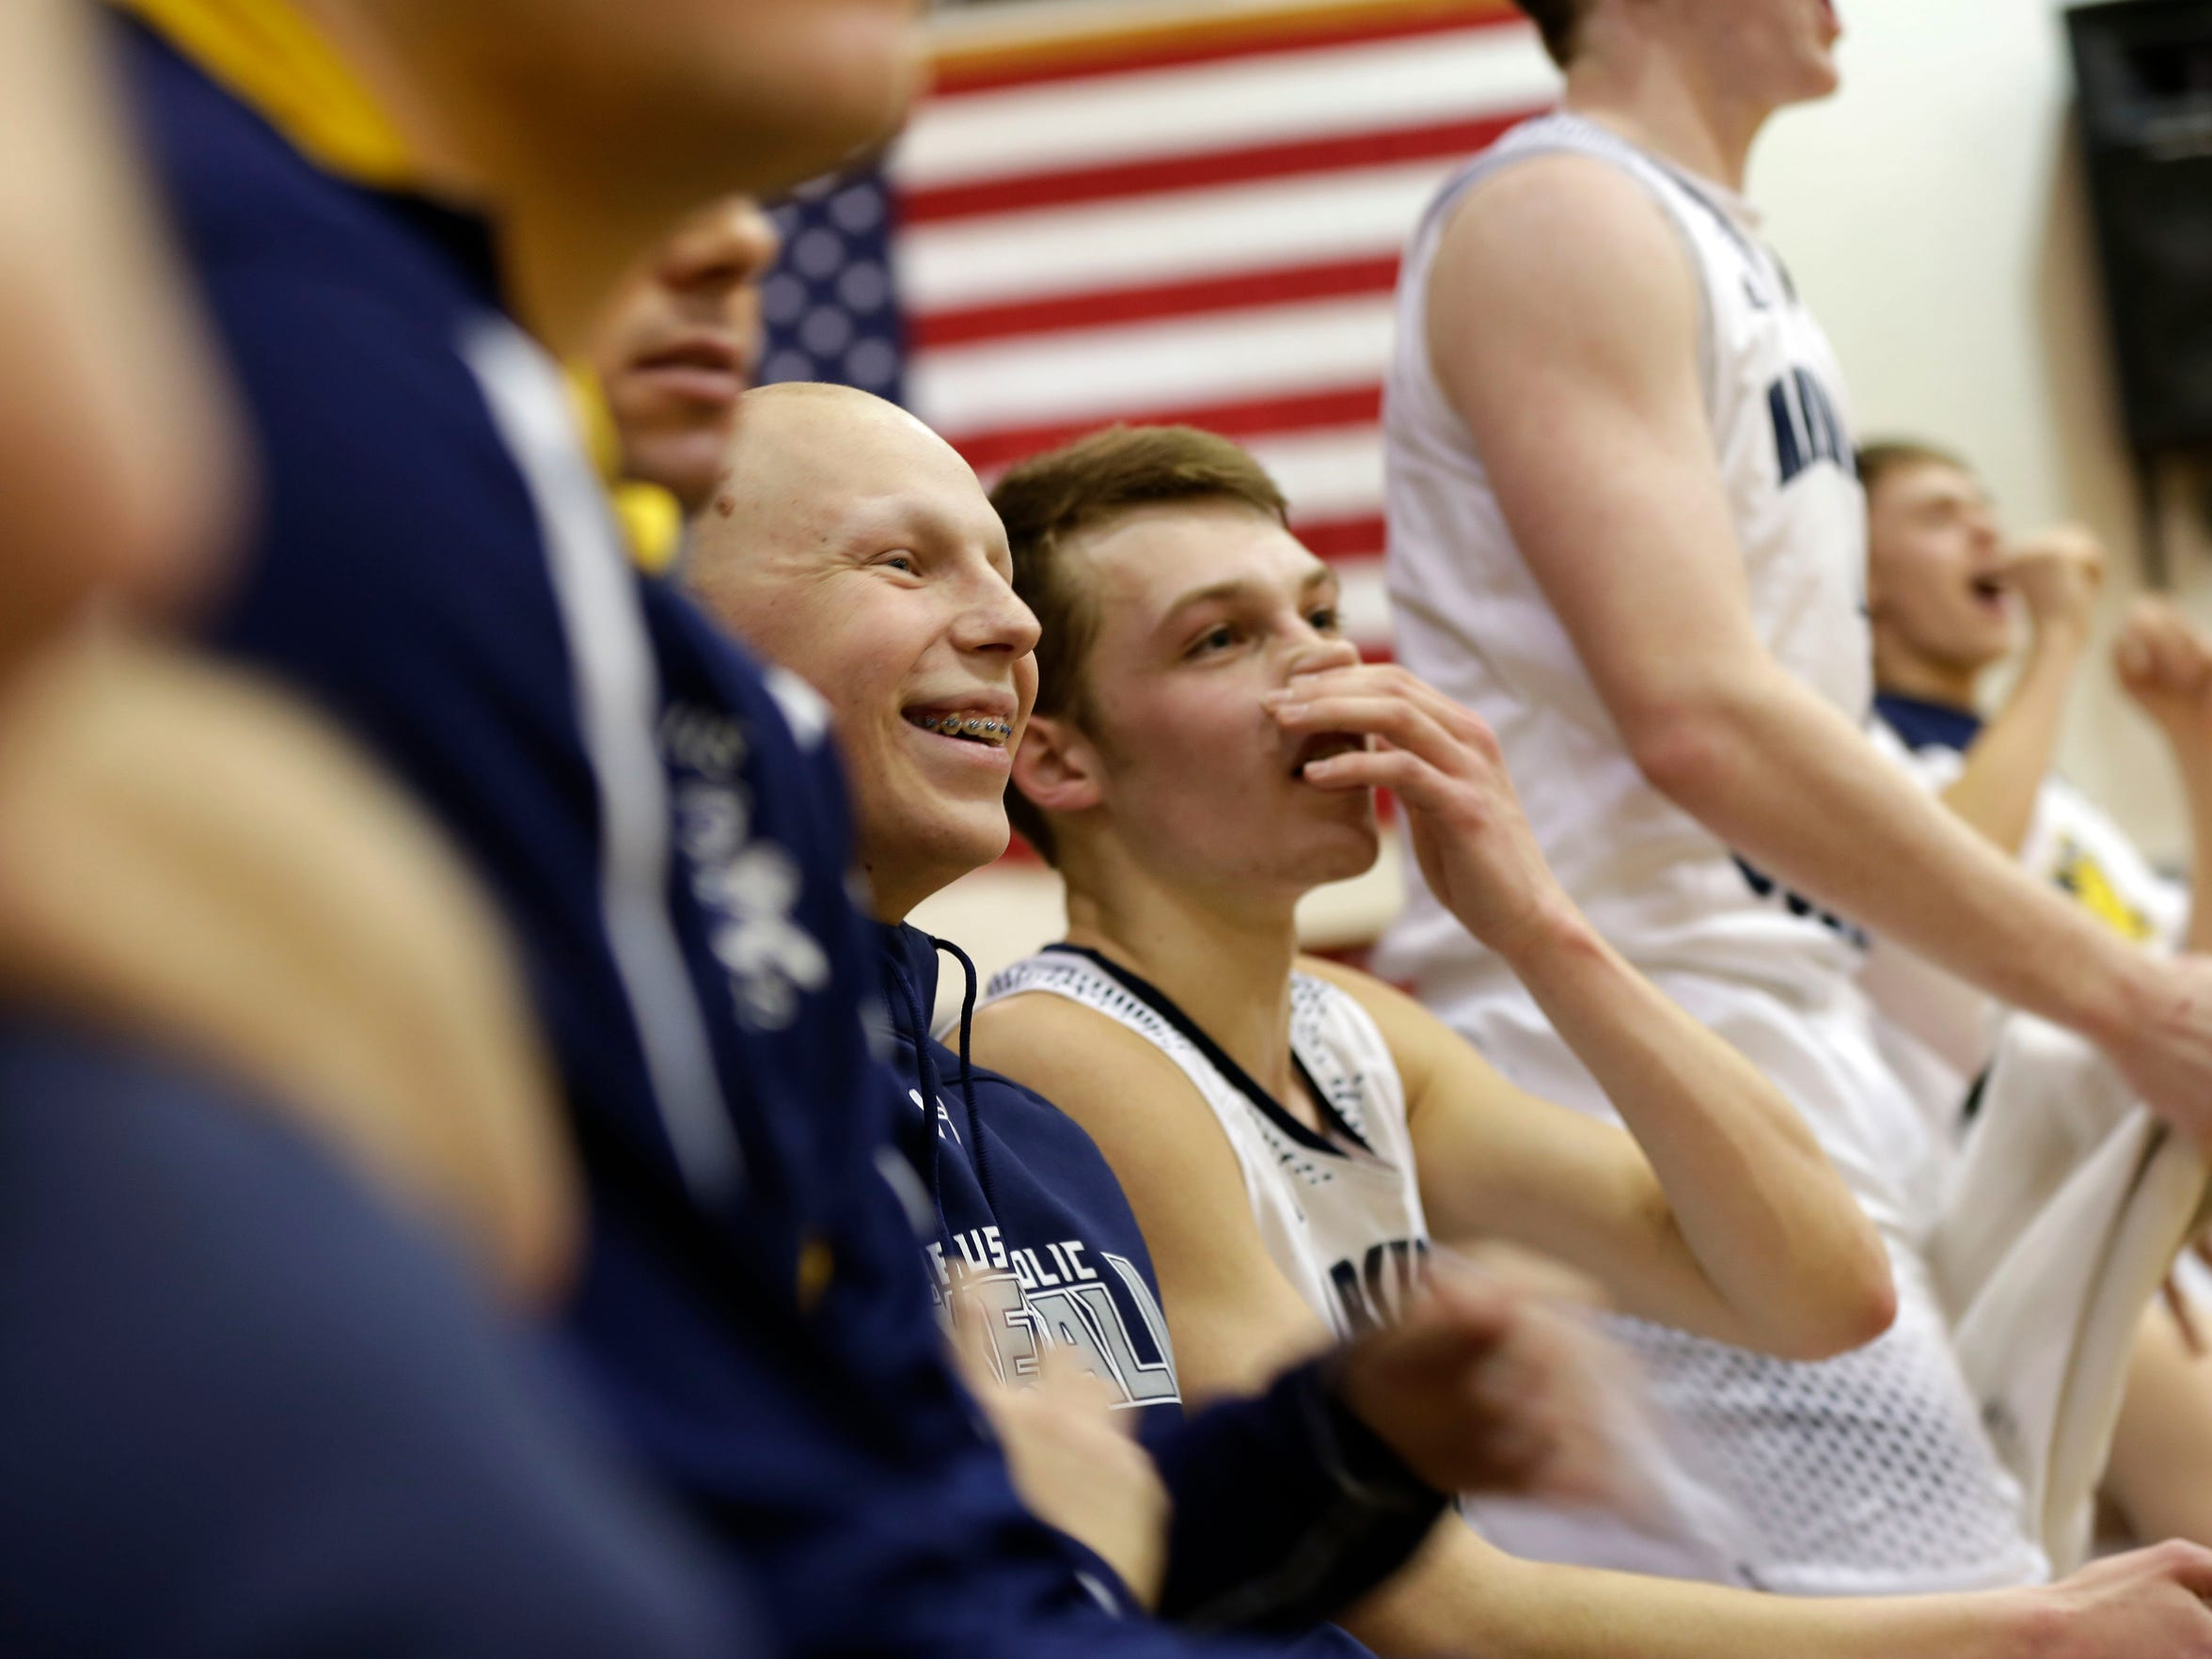 Ryan Dieringer laughs while his teammates on the bench